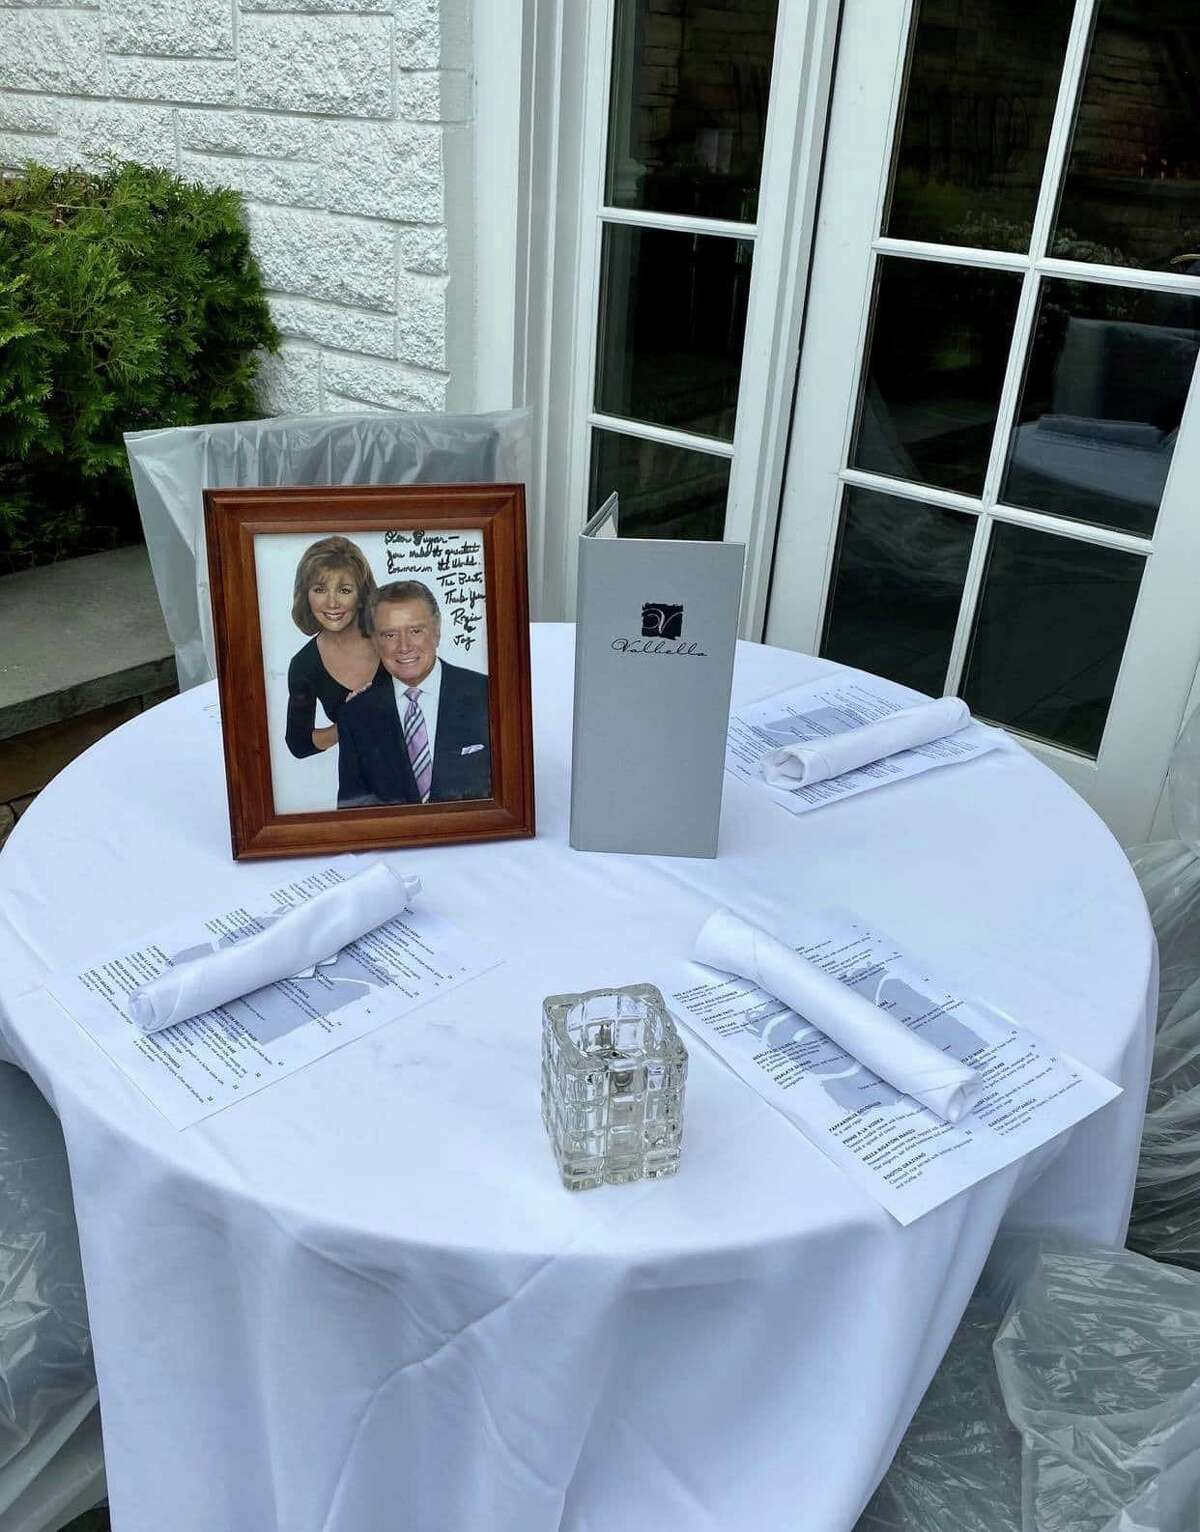 Valbella in Greenwich keeps the table open for Regis Philbin on Saturday night. The iconic talk show host was a longtime town resident and regular at the local restaurant. Philbin died Friday at the age of 88.